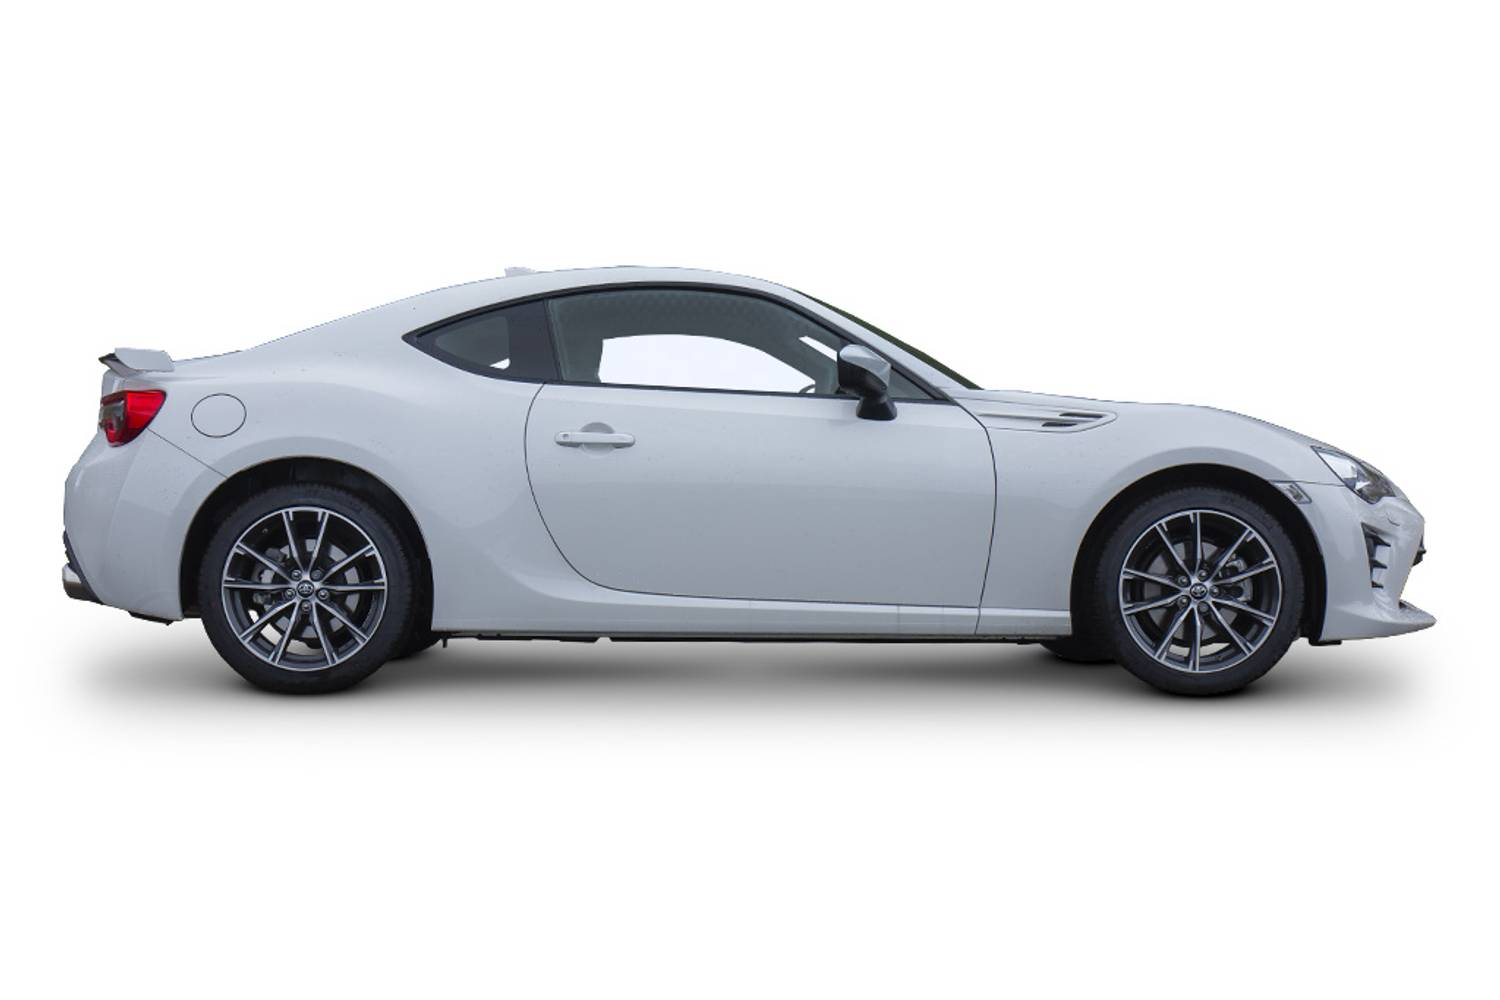 Toyota GT86 Coupe 2.0 D-4S 2dr Profile